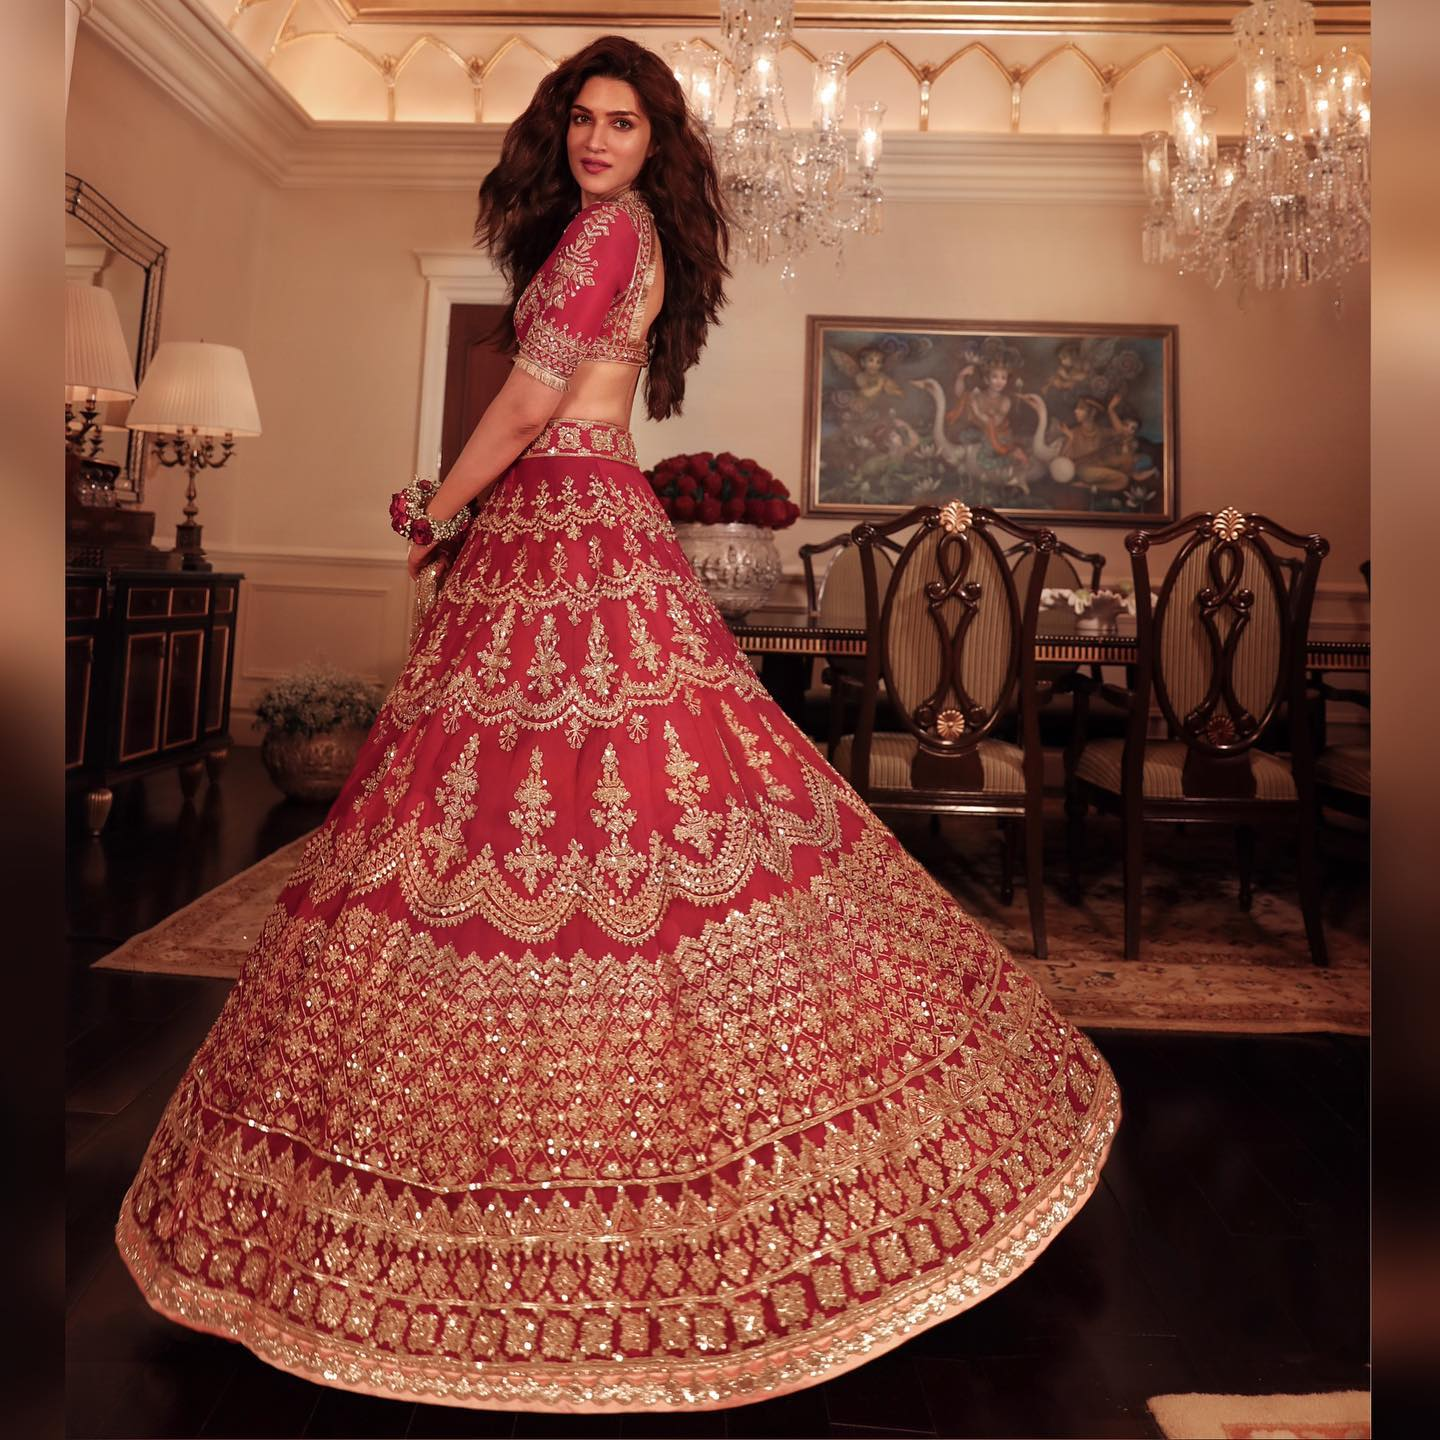 And on this eternal journey to create a cinematic splendor they met the breathtaking Kriti Sanon in Nooraniyat's scarlet ensemble ornamented in cord and sequins beaded in shades of flickering gold.   2021-09-20